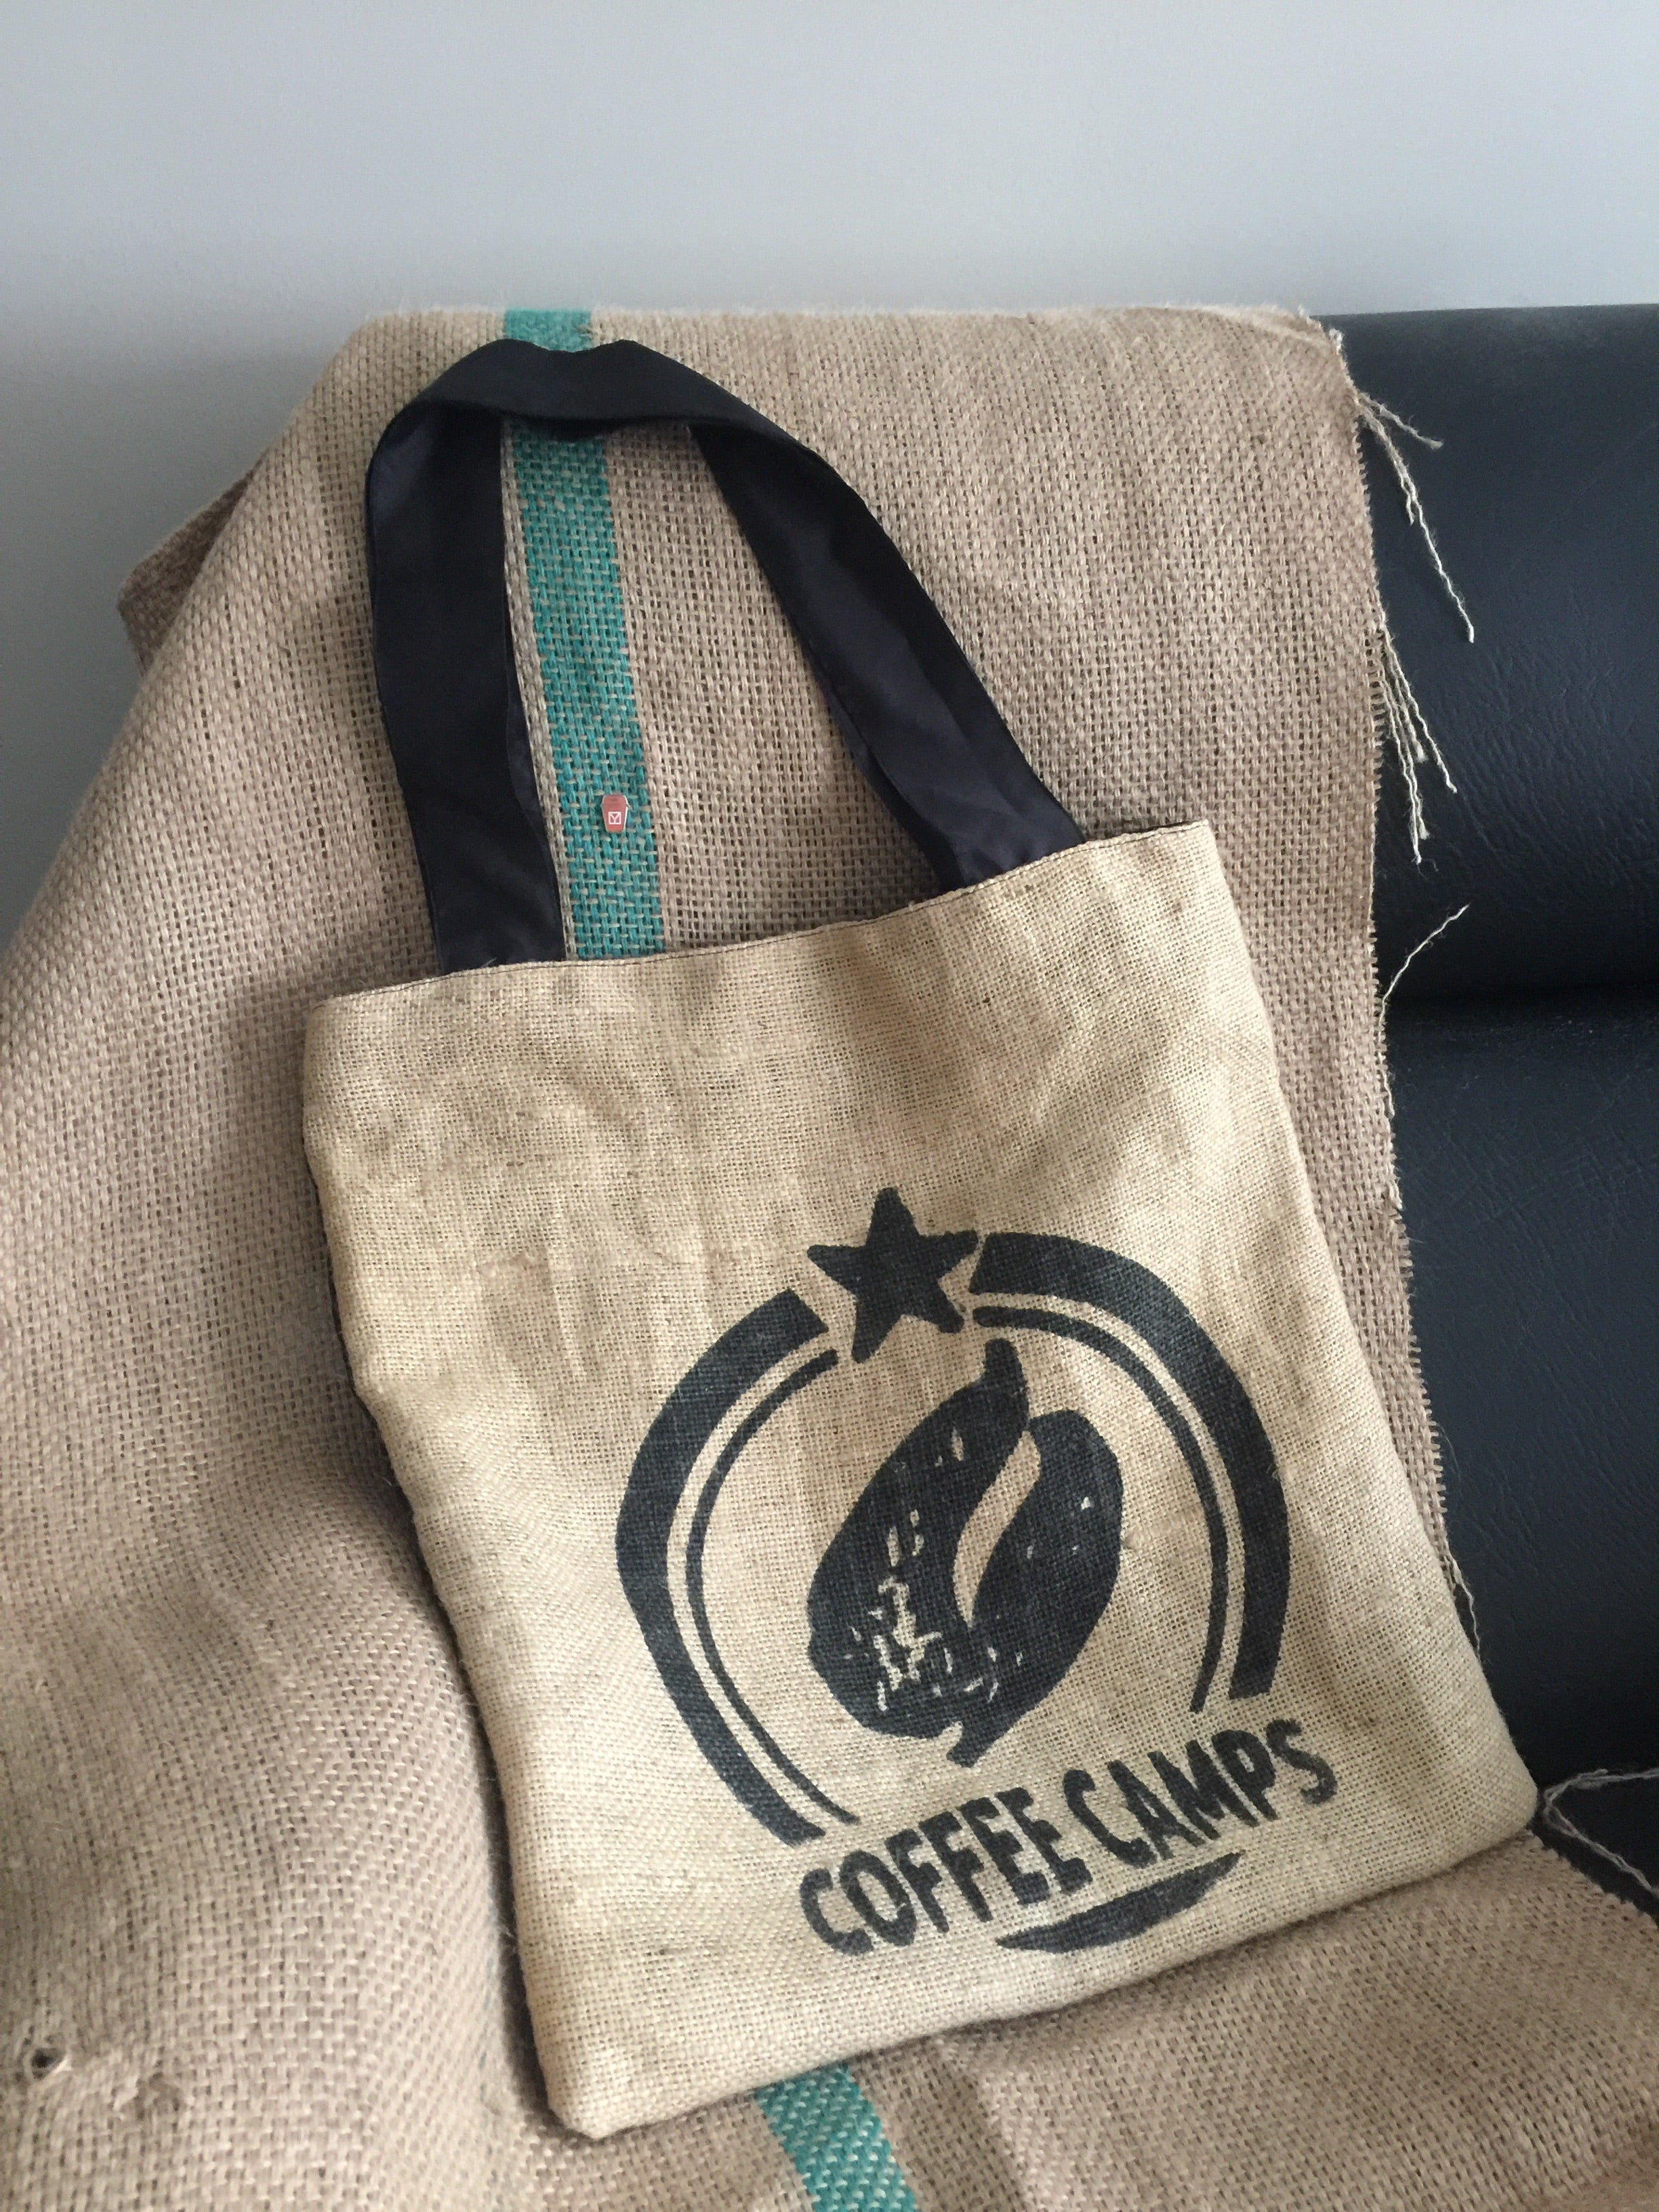 TOTEdo Na TOTEs Bag - Yardstick Coffee Collab - Black Coffee Camps